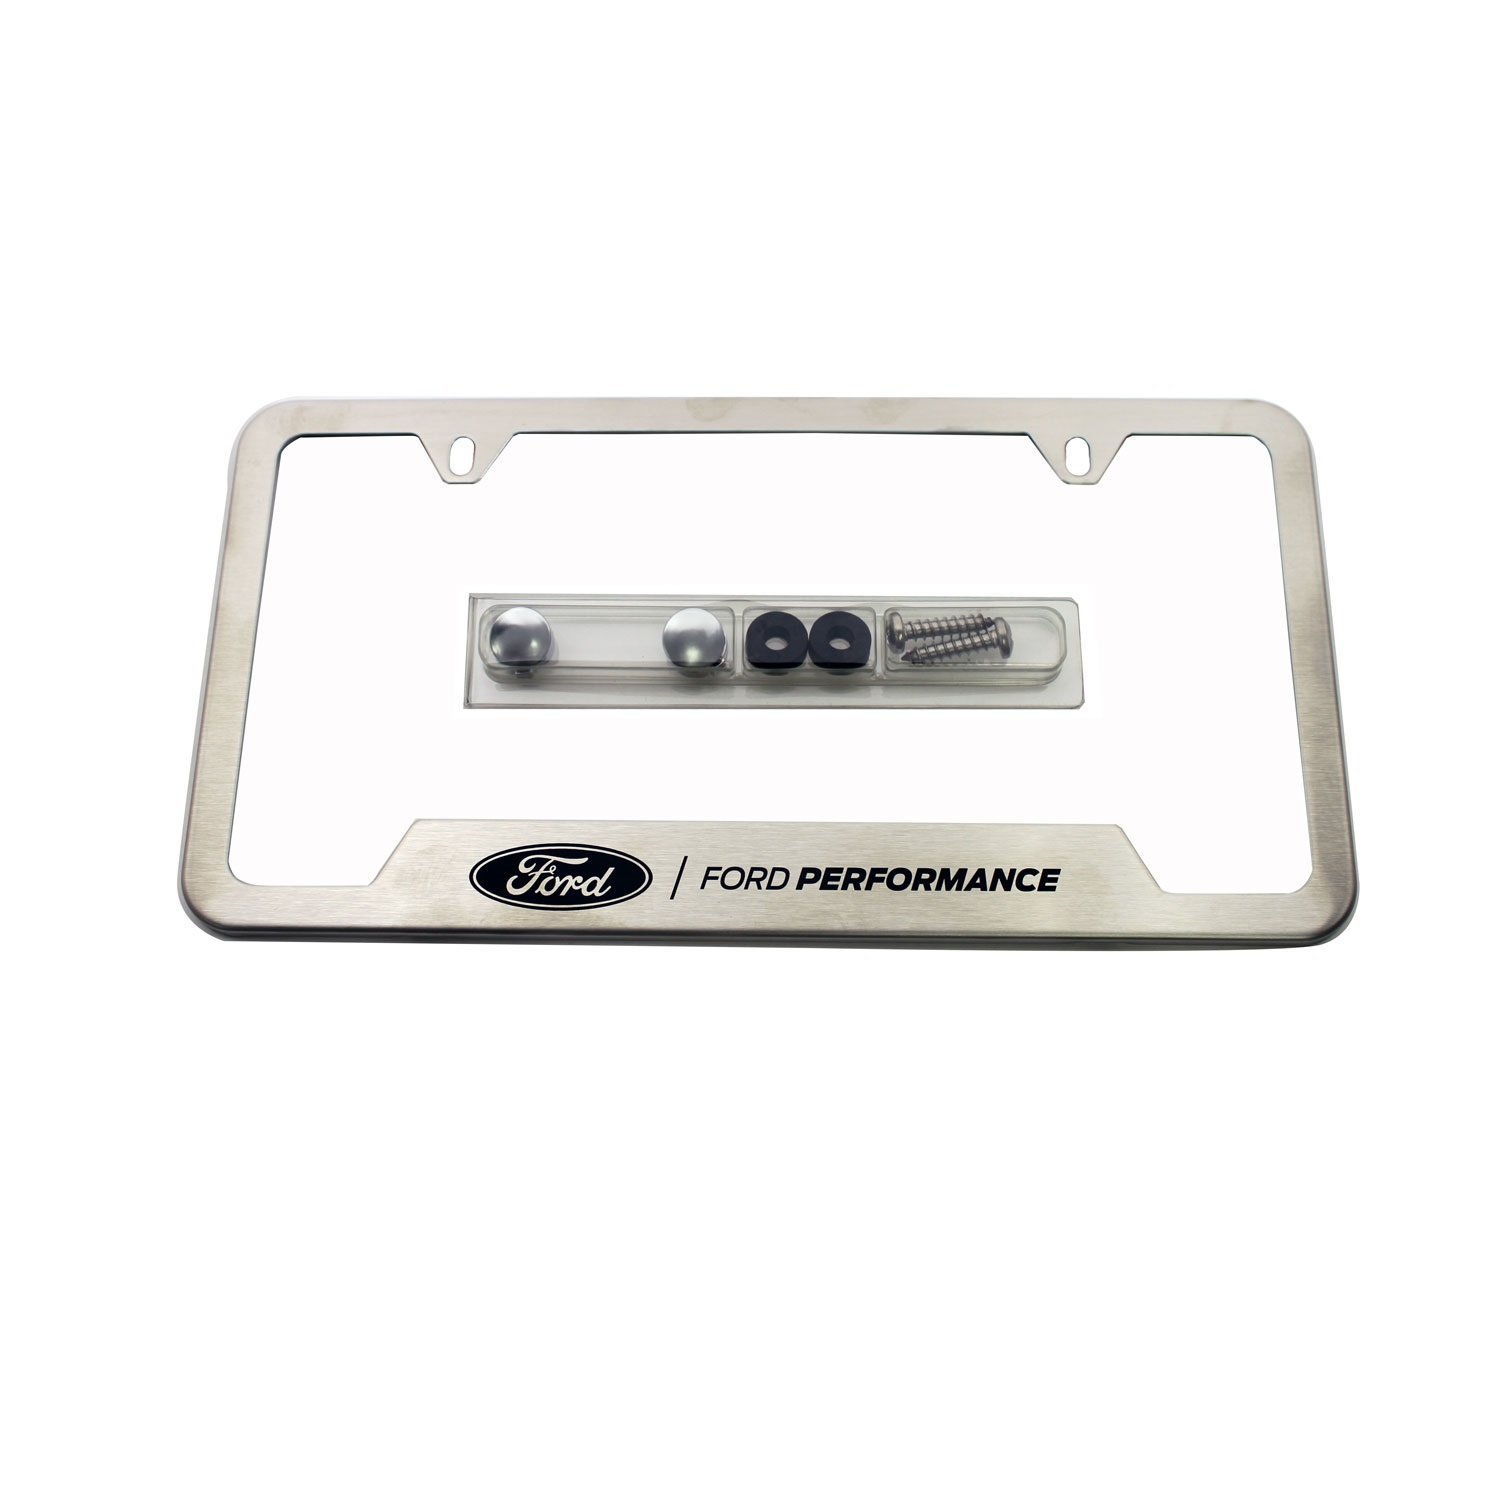 Amazon.com: Ford Racing Stainless Steel Ford Performance License ...